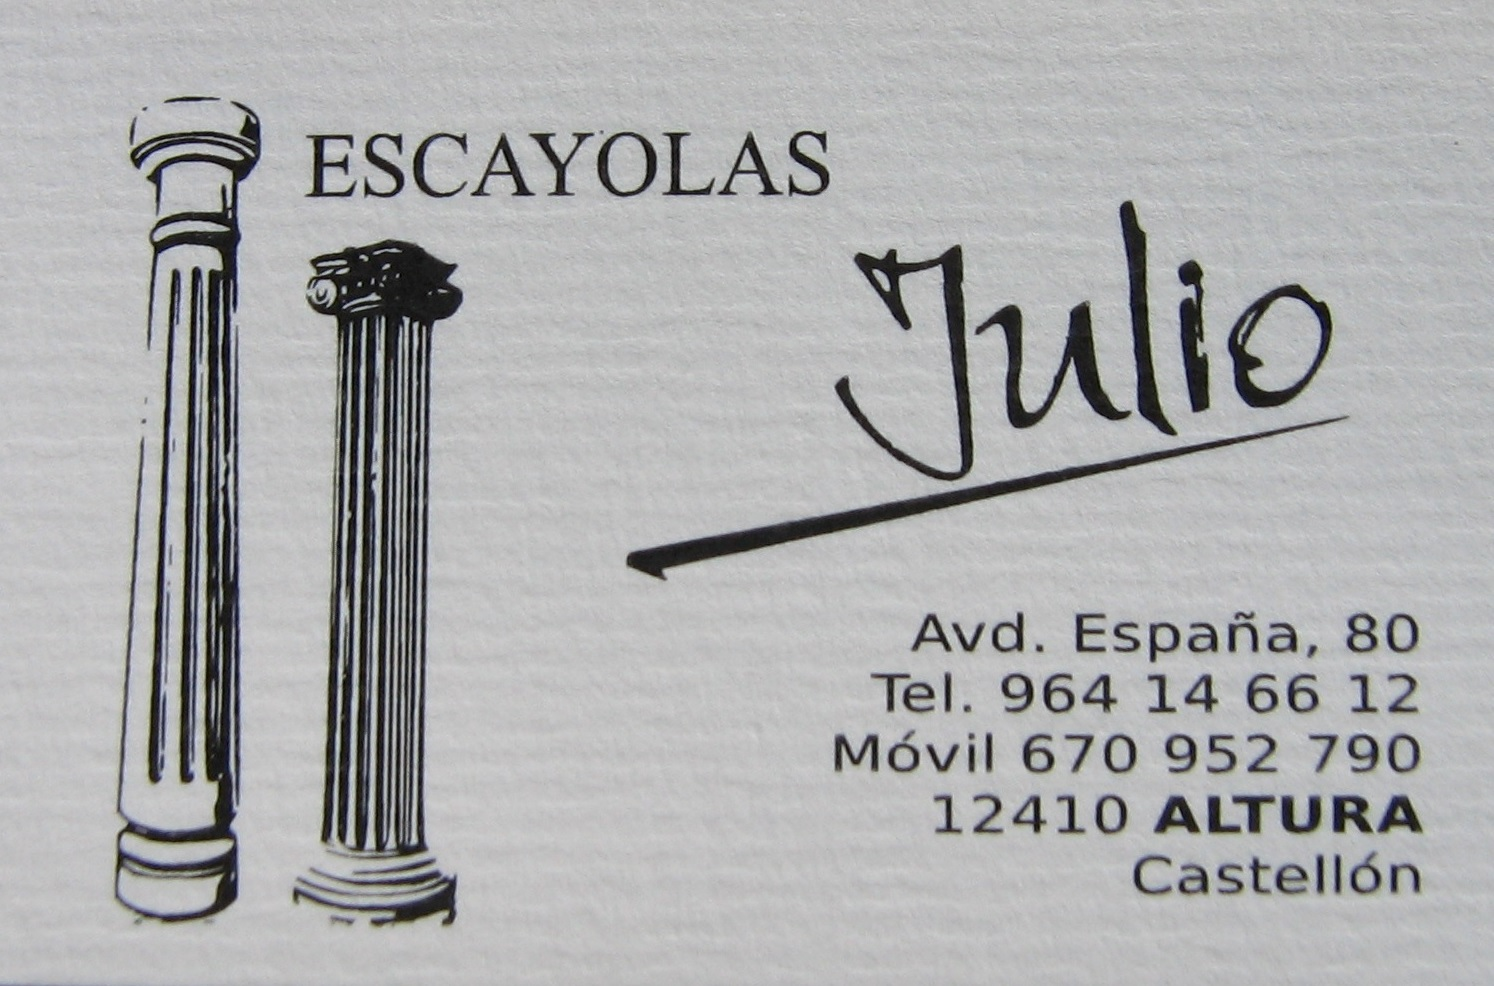 Escayolas Julio